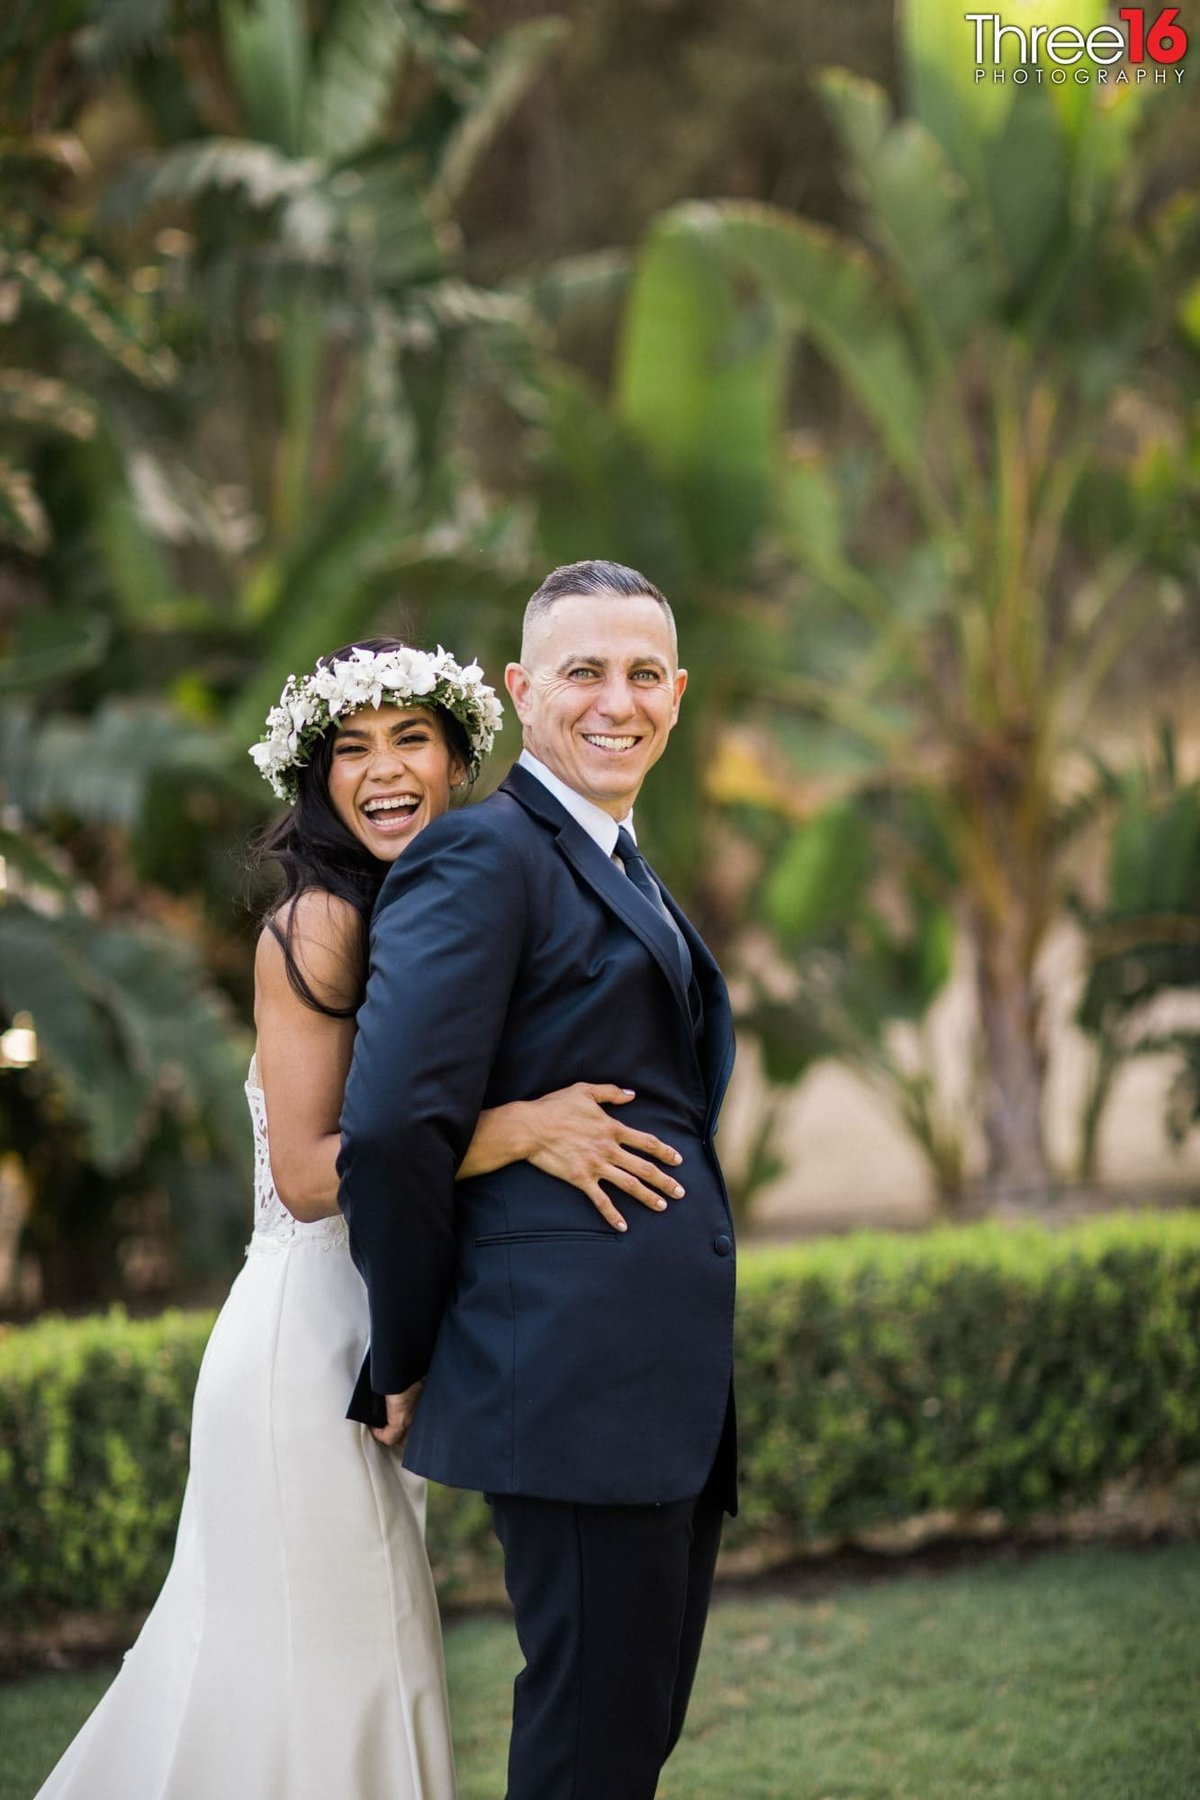 Newhall Mansion Piru California Los Angeles  Wedding Venue Photographs Bride and Groom portrait